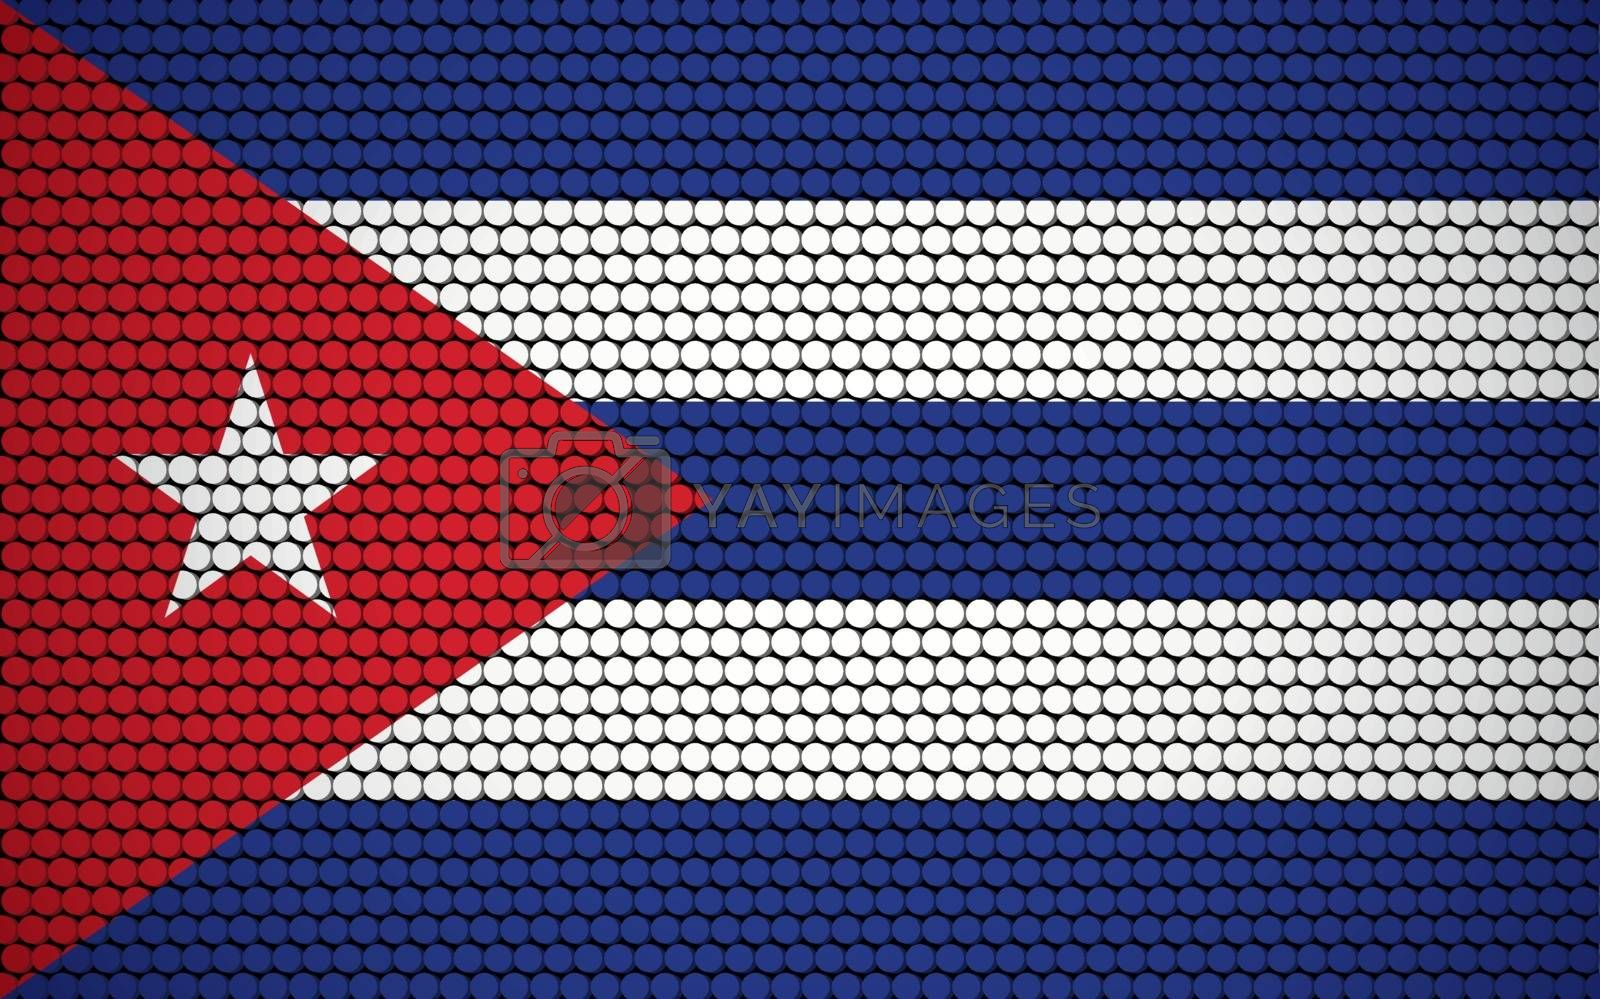 Abstract flag of Cuba made of circles. Cuban flag designed with colored dots giving it a modern and futuristic abstract look.